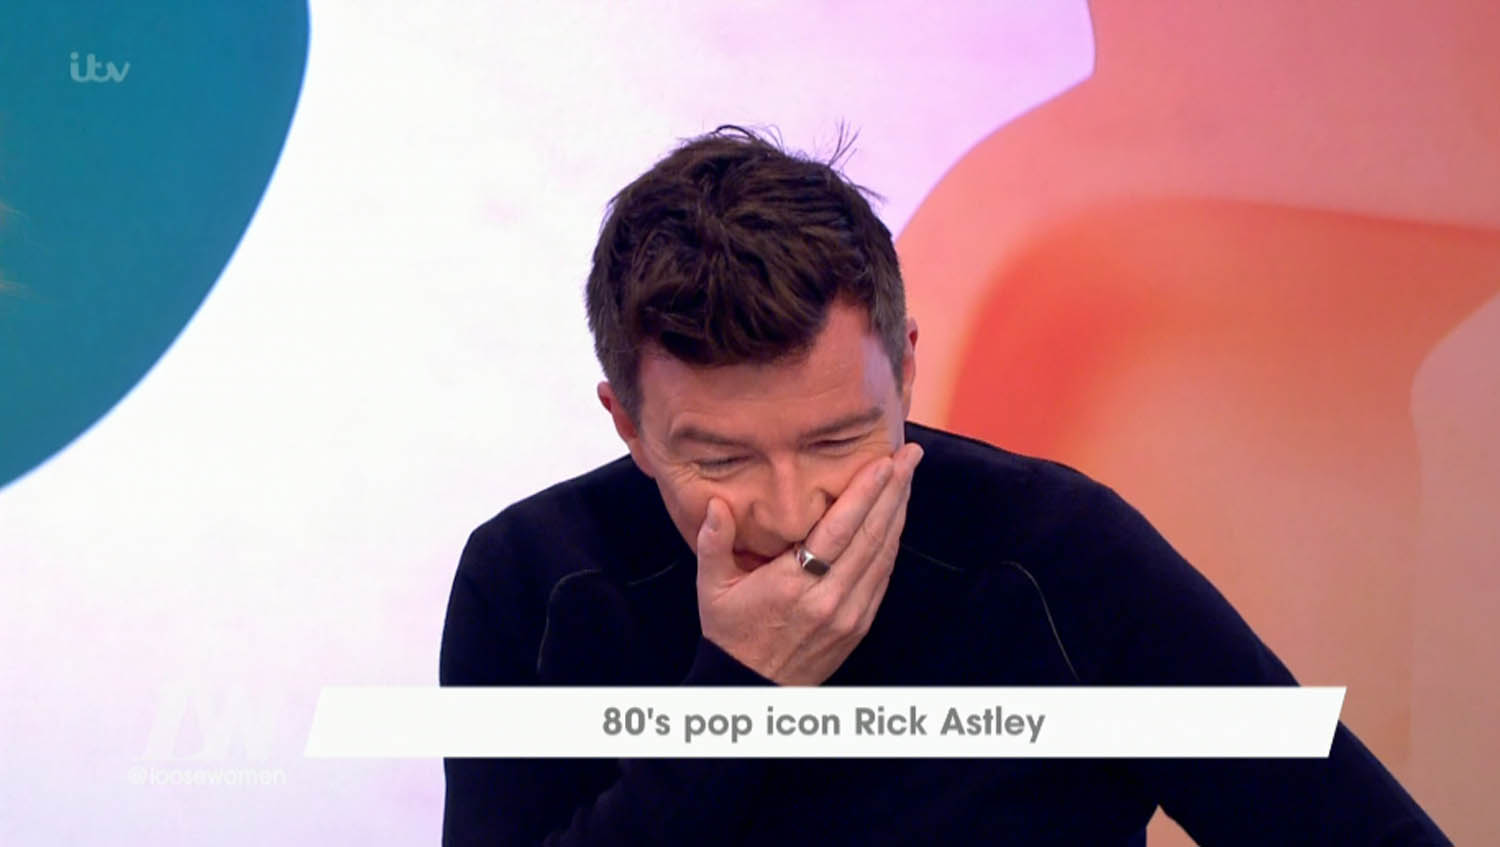 80s pop icon Rick Astley goes on Loose Women, mistakes it for The One Show. Awkward